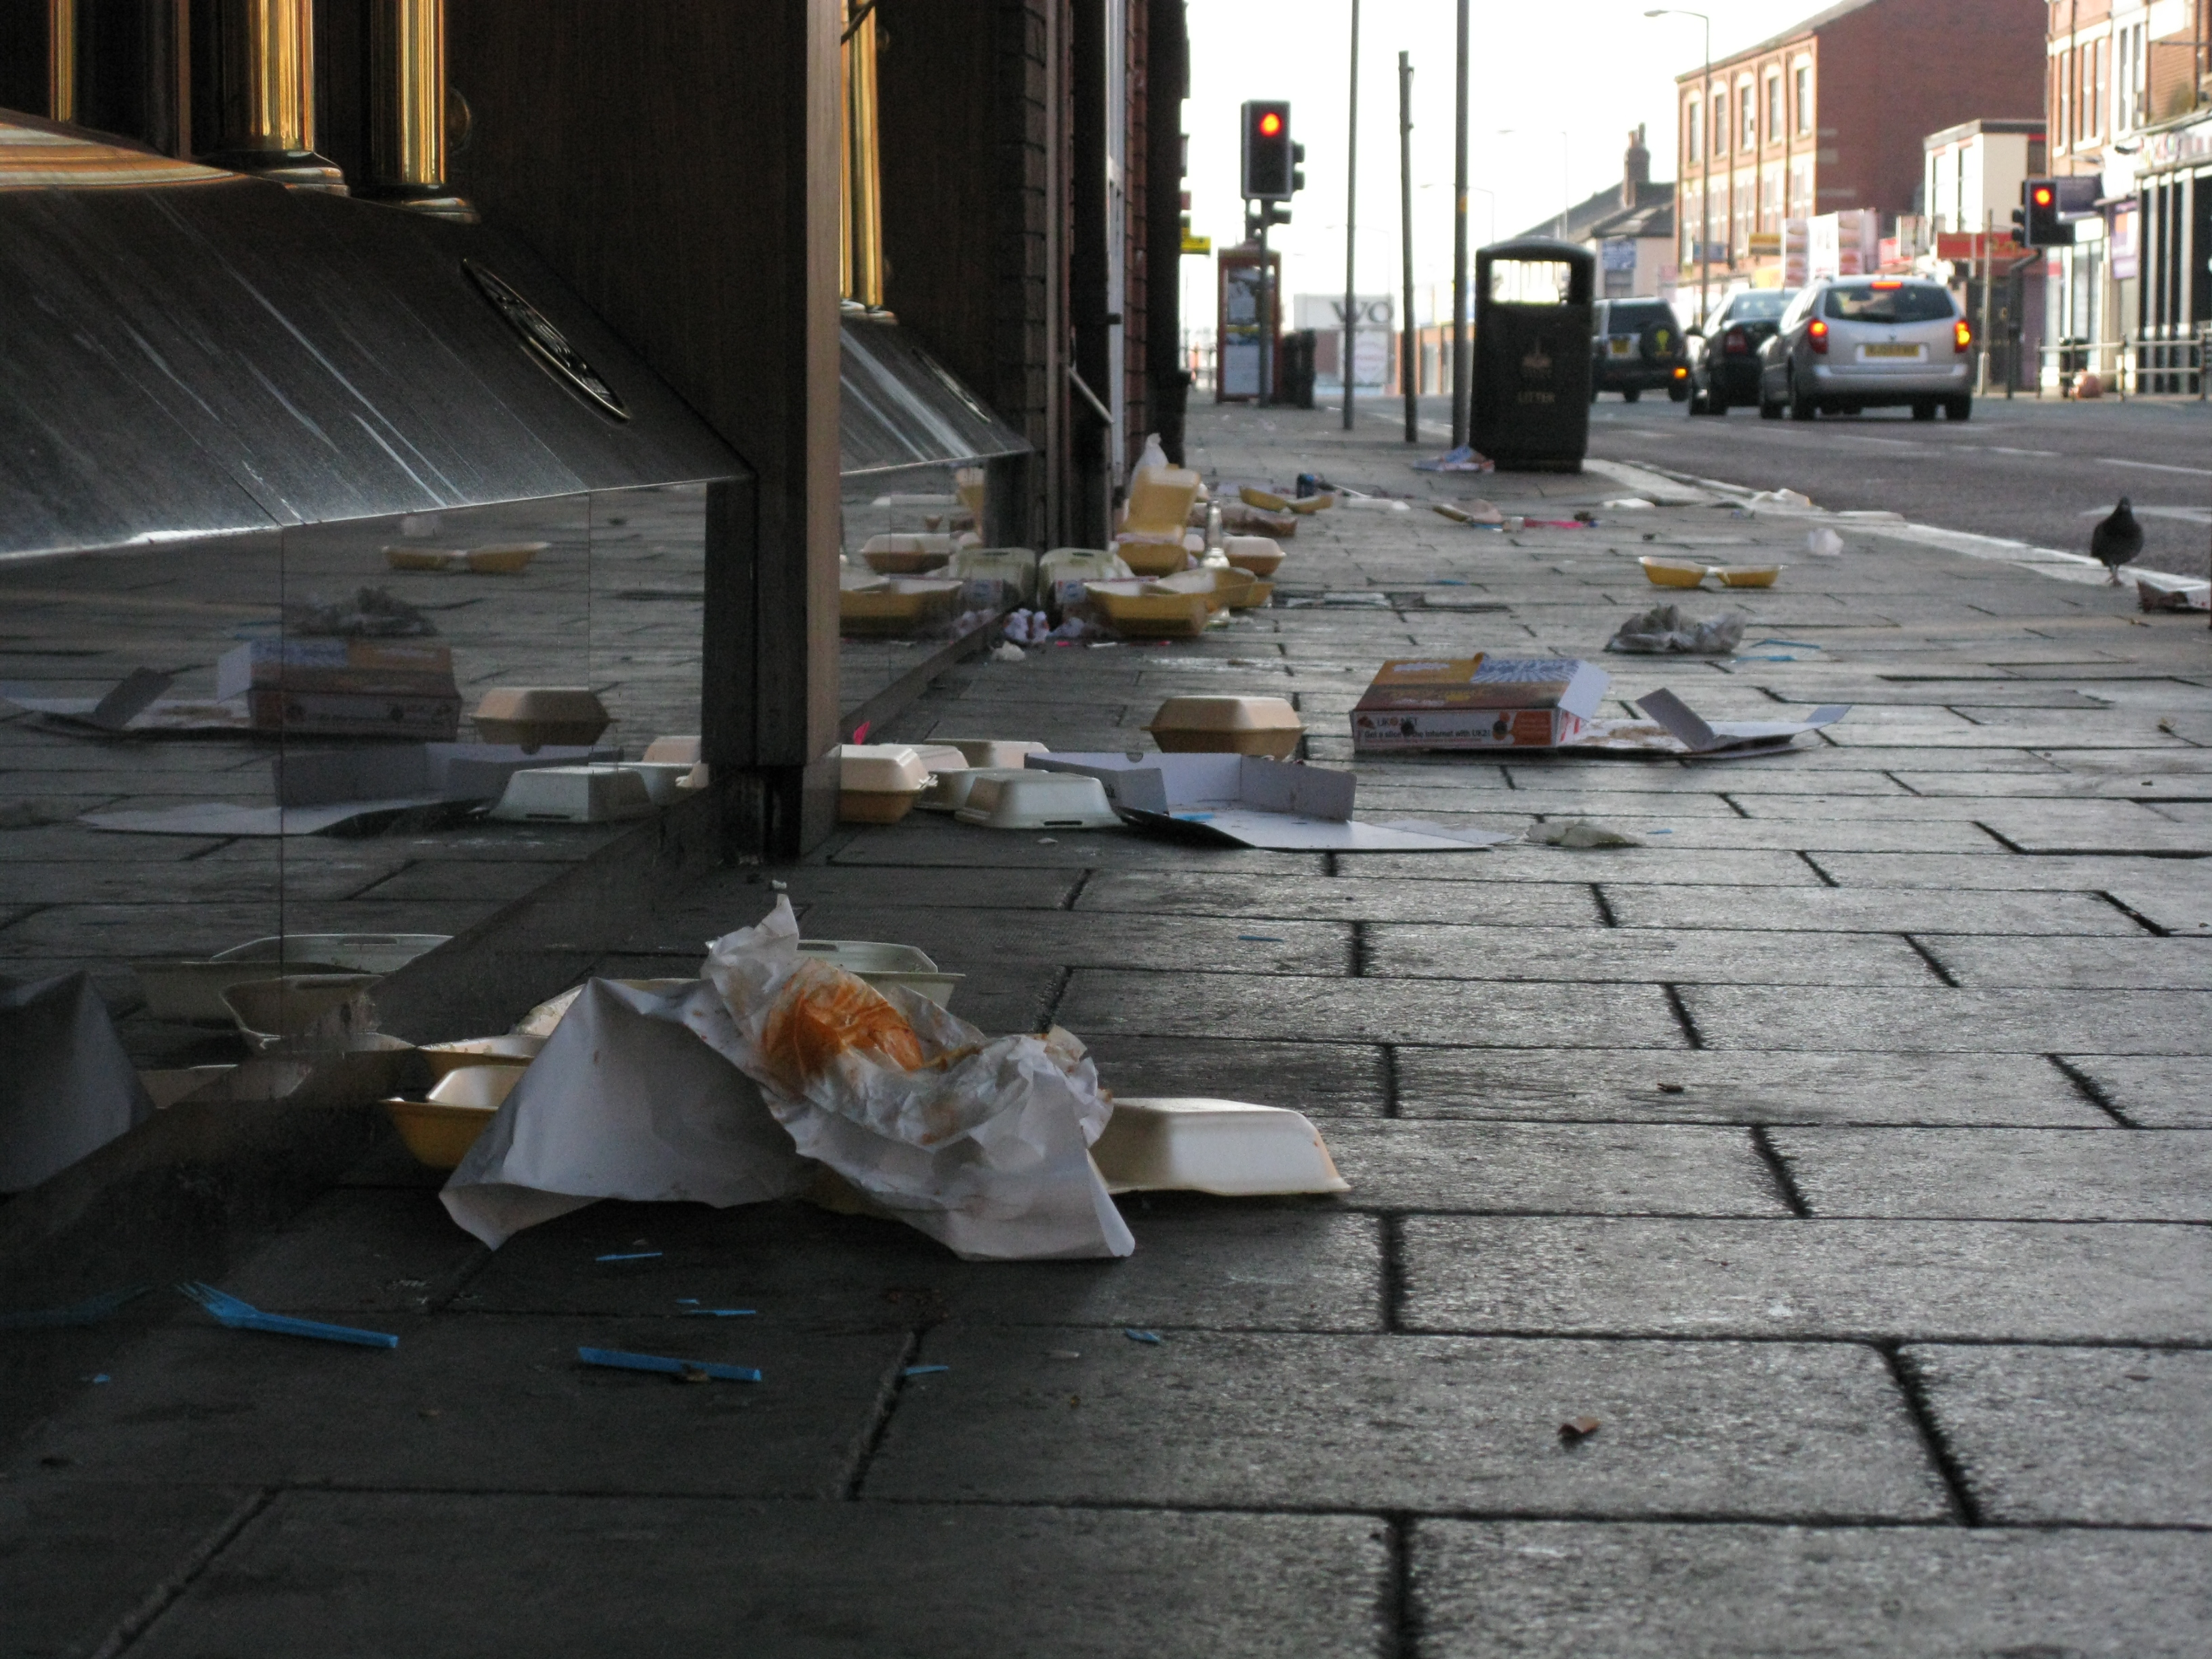 A vigilante street cleaner has helped to track down a litterbug through a recipt left in his discarded takeaway bag. File photo.